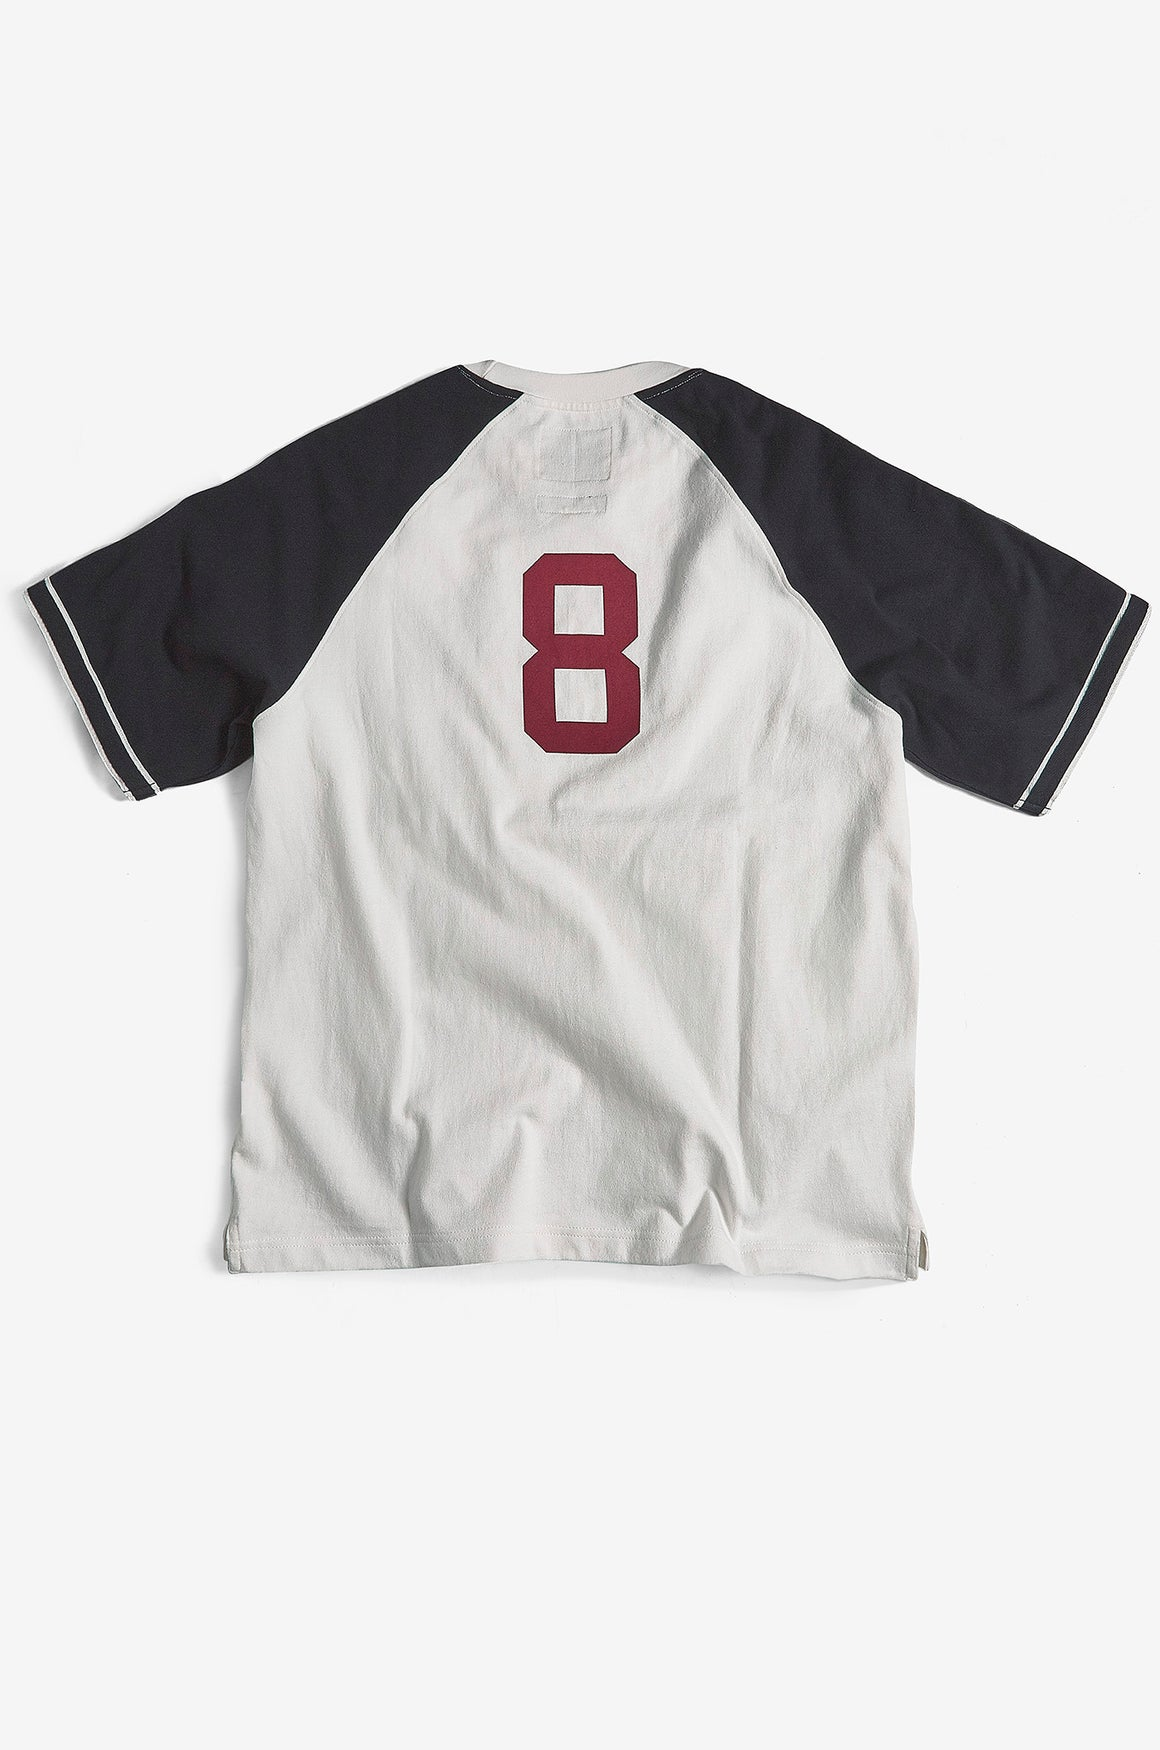 Vintage Baseball Style Heavy Jersey T-Shirt in Navy / Red by Realm Empire